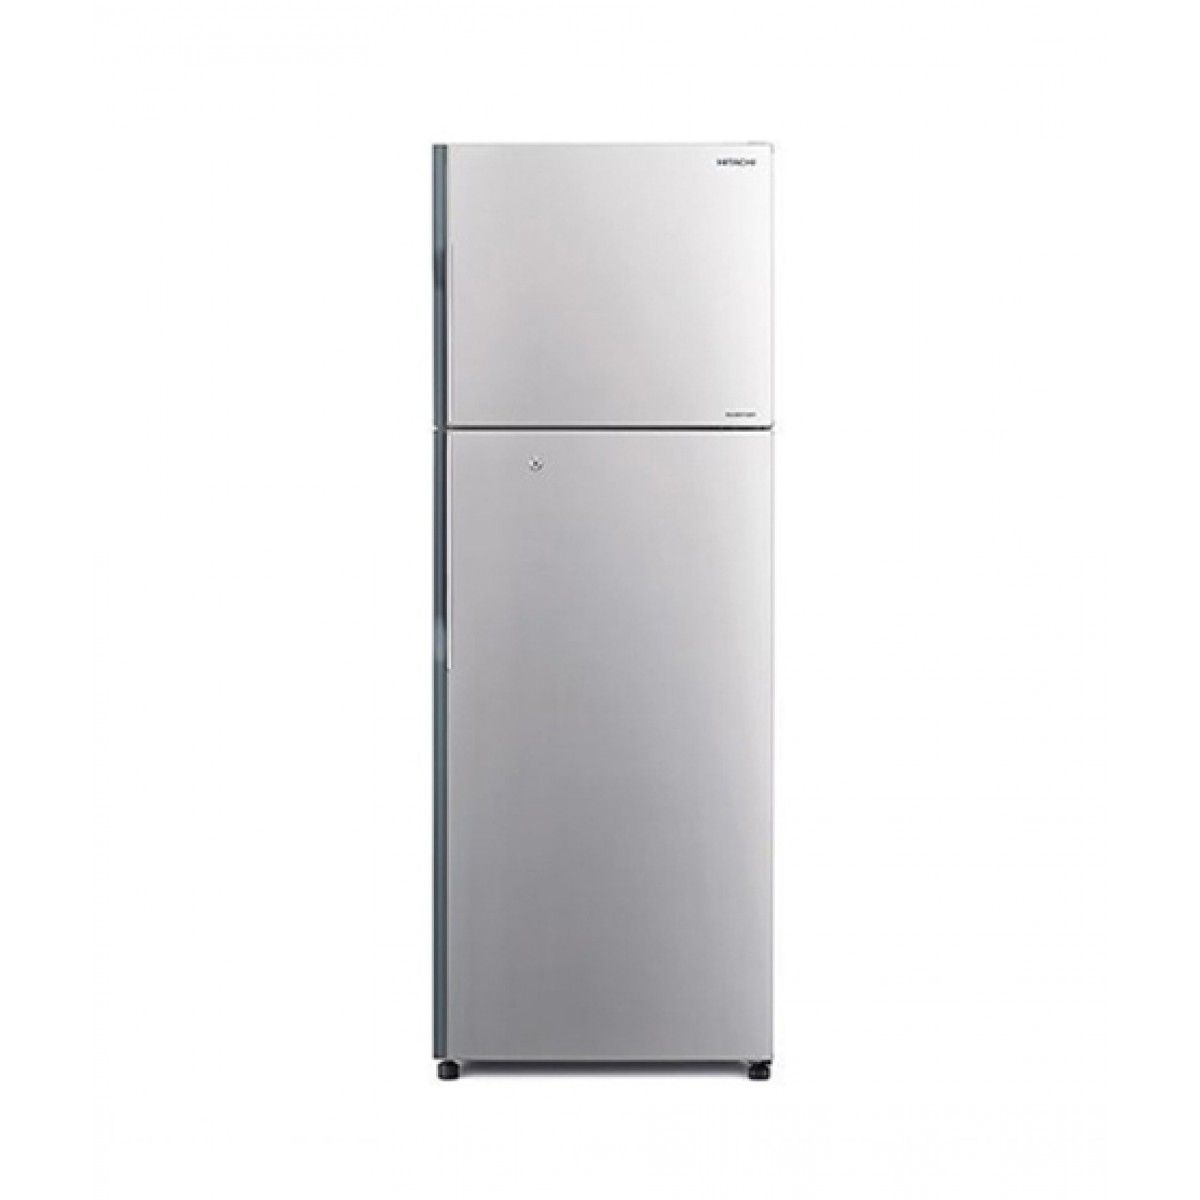 Hitachi (R-H350P4PBK) Freezer-on-Top 11 cu ft Refrigerator Silver